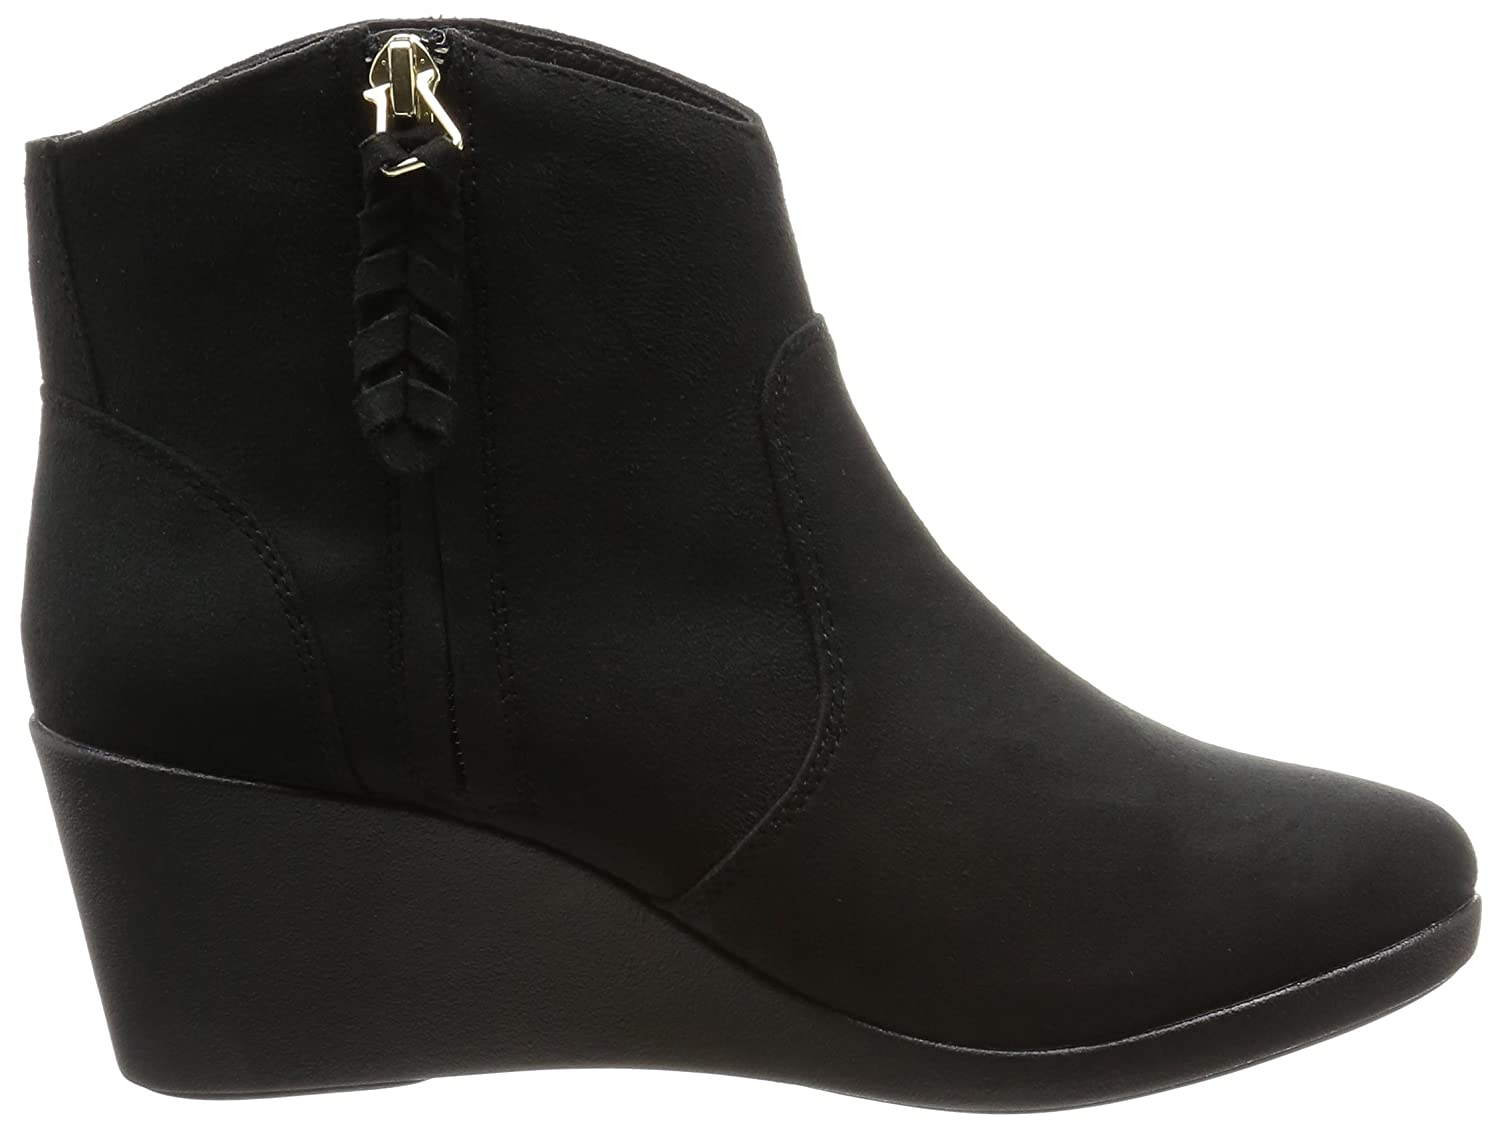 CROCS Woman - Leigh Synth Suede Wedge Bootie black, Size:6.5: Amazon.co.uk:  Shoes & Bags